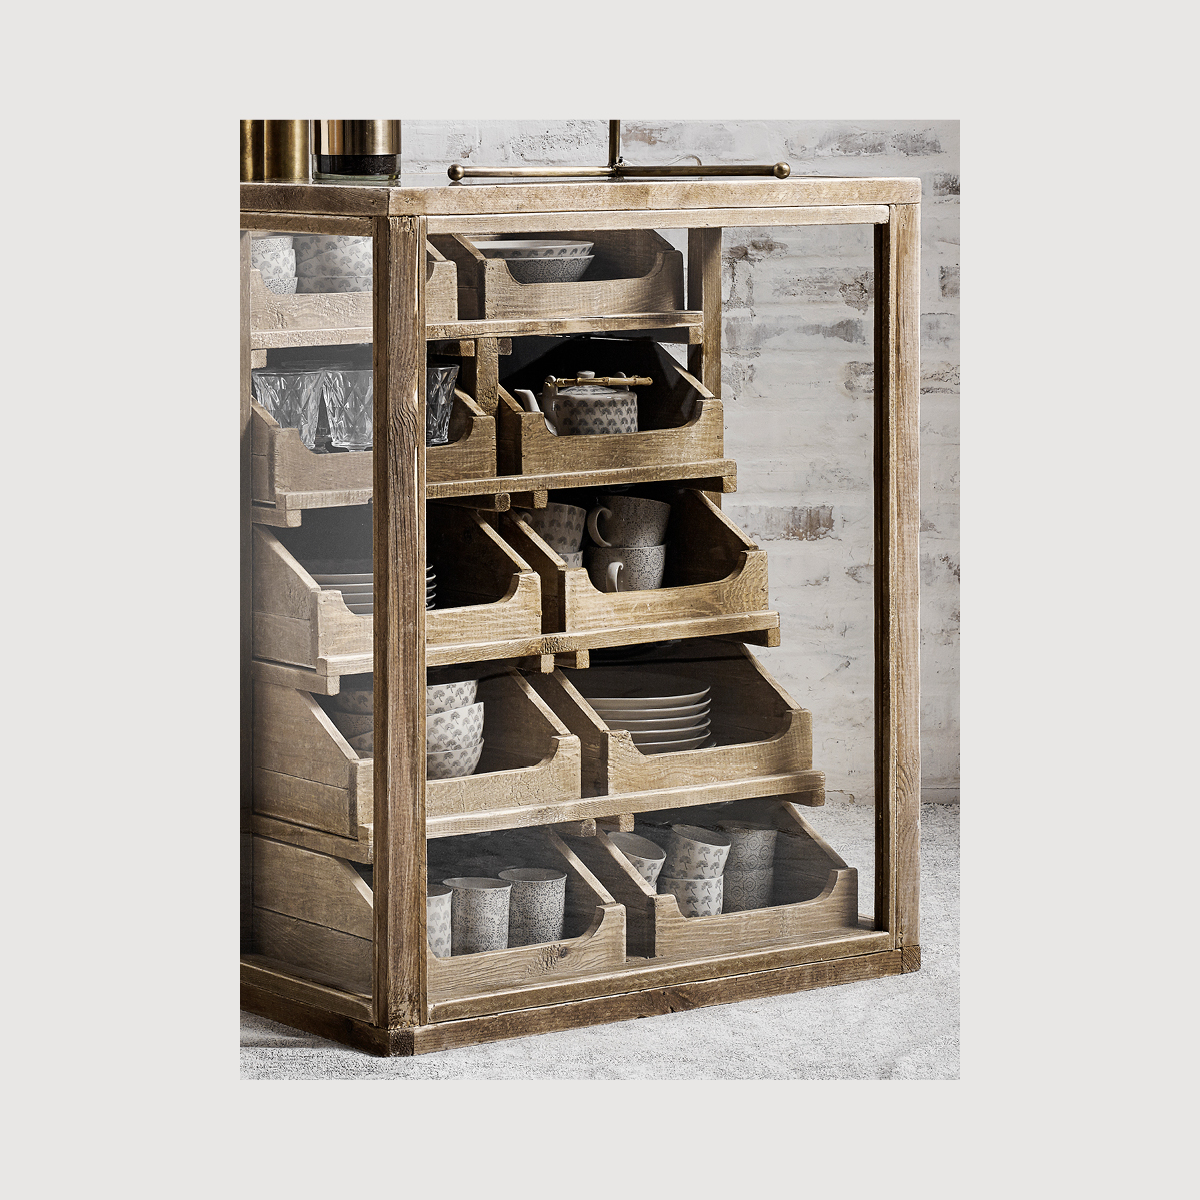 Pharmacy Dresser with Drawers gallery image